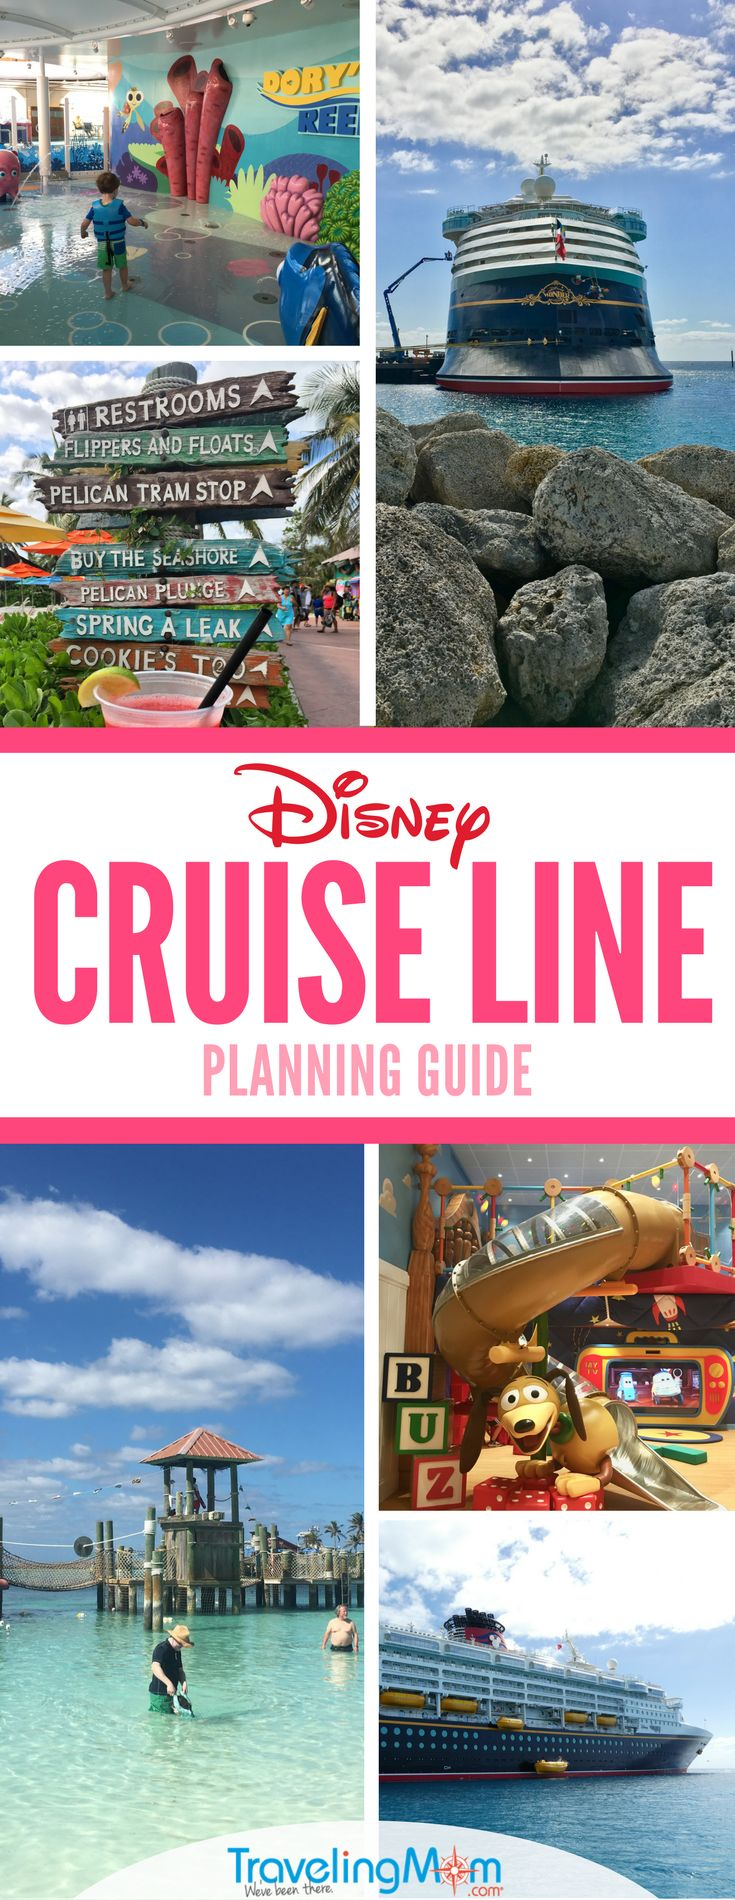 Planning a Disney Cruise Line vacation? Expert trip planning tips from DCL veterans. Packing lists, ship destinations, dining, video tours, and more. #disneycruise #disneycruiseline #cruise #DCL